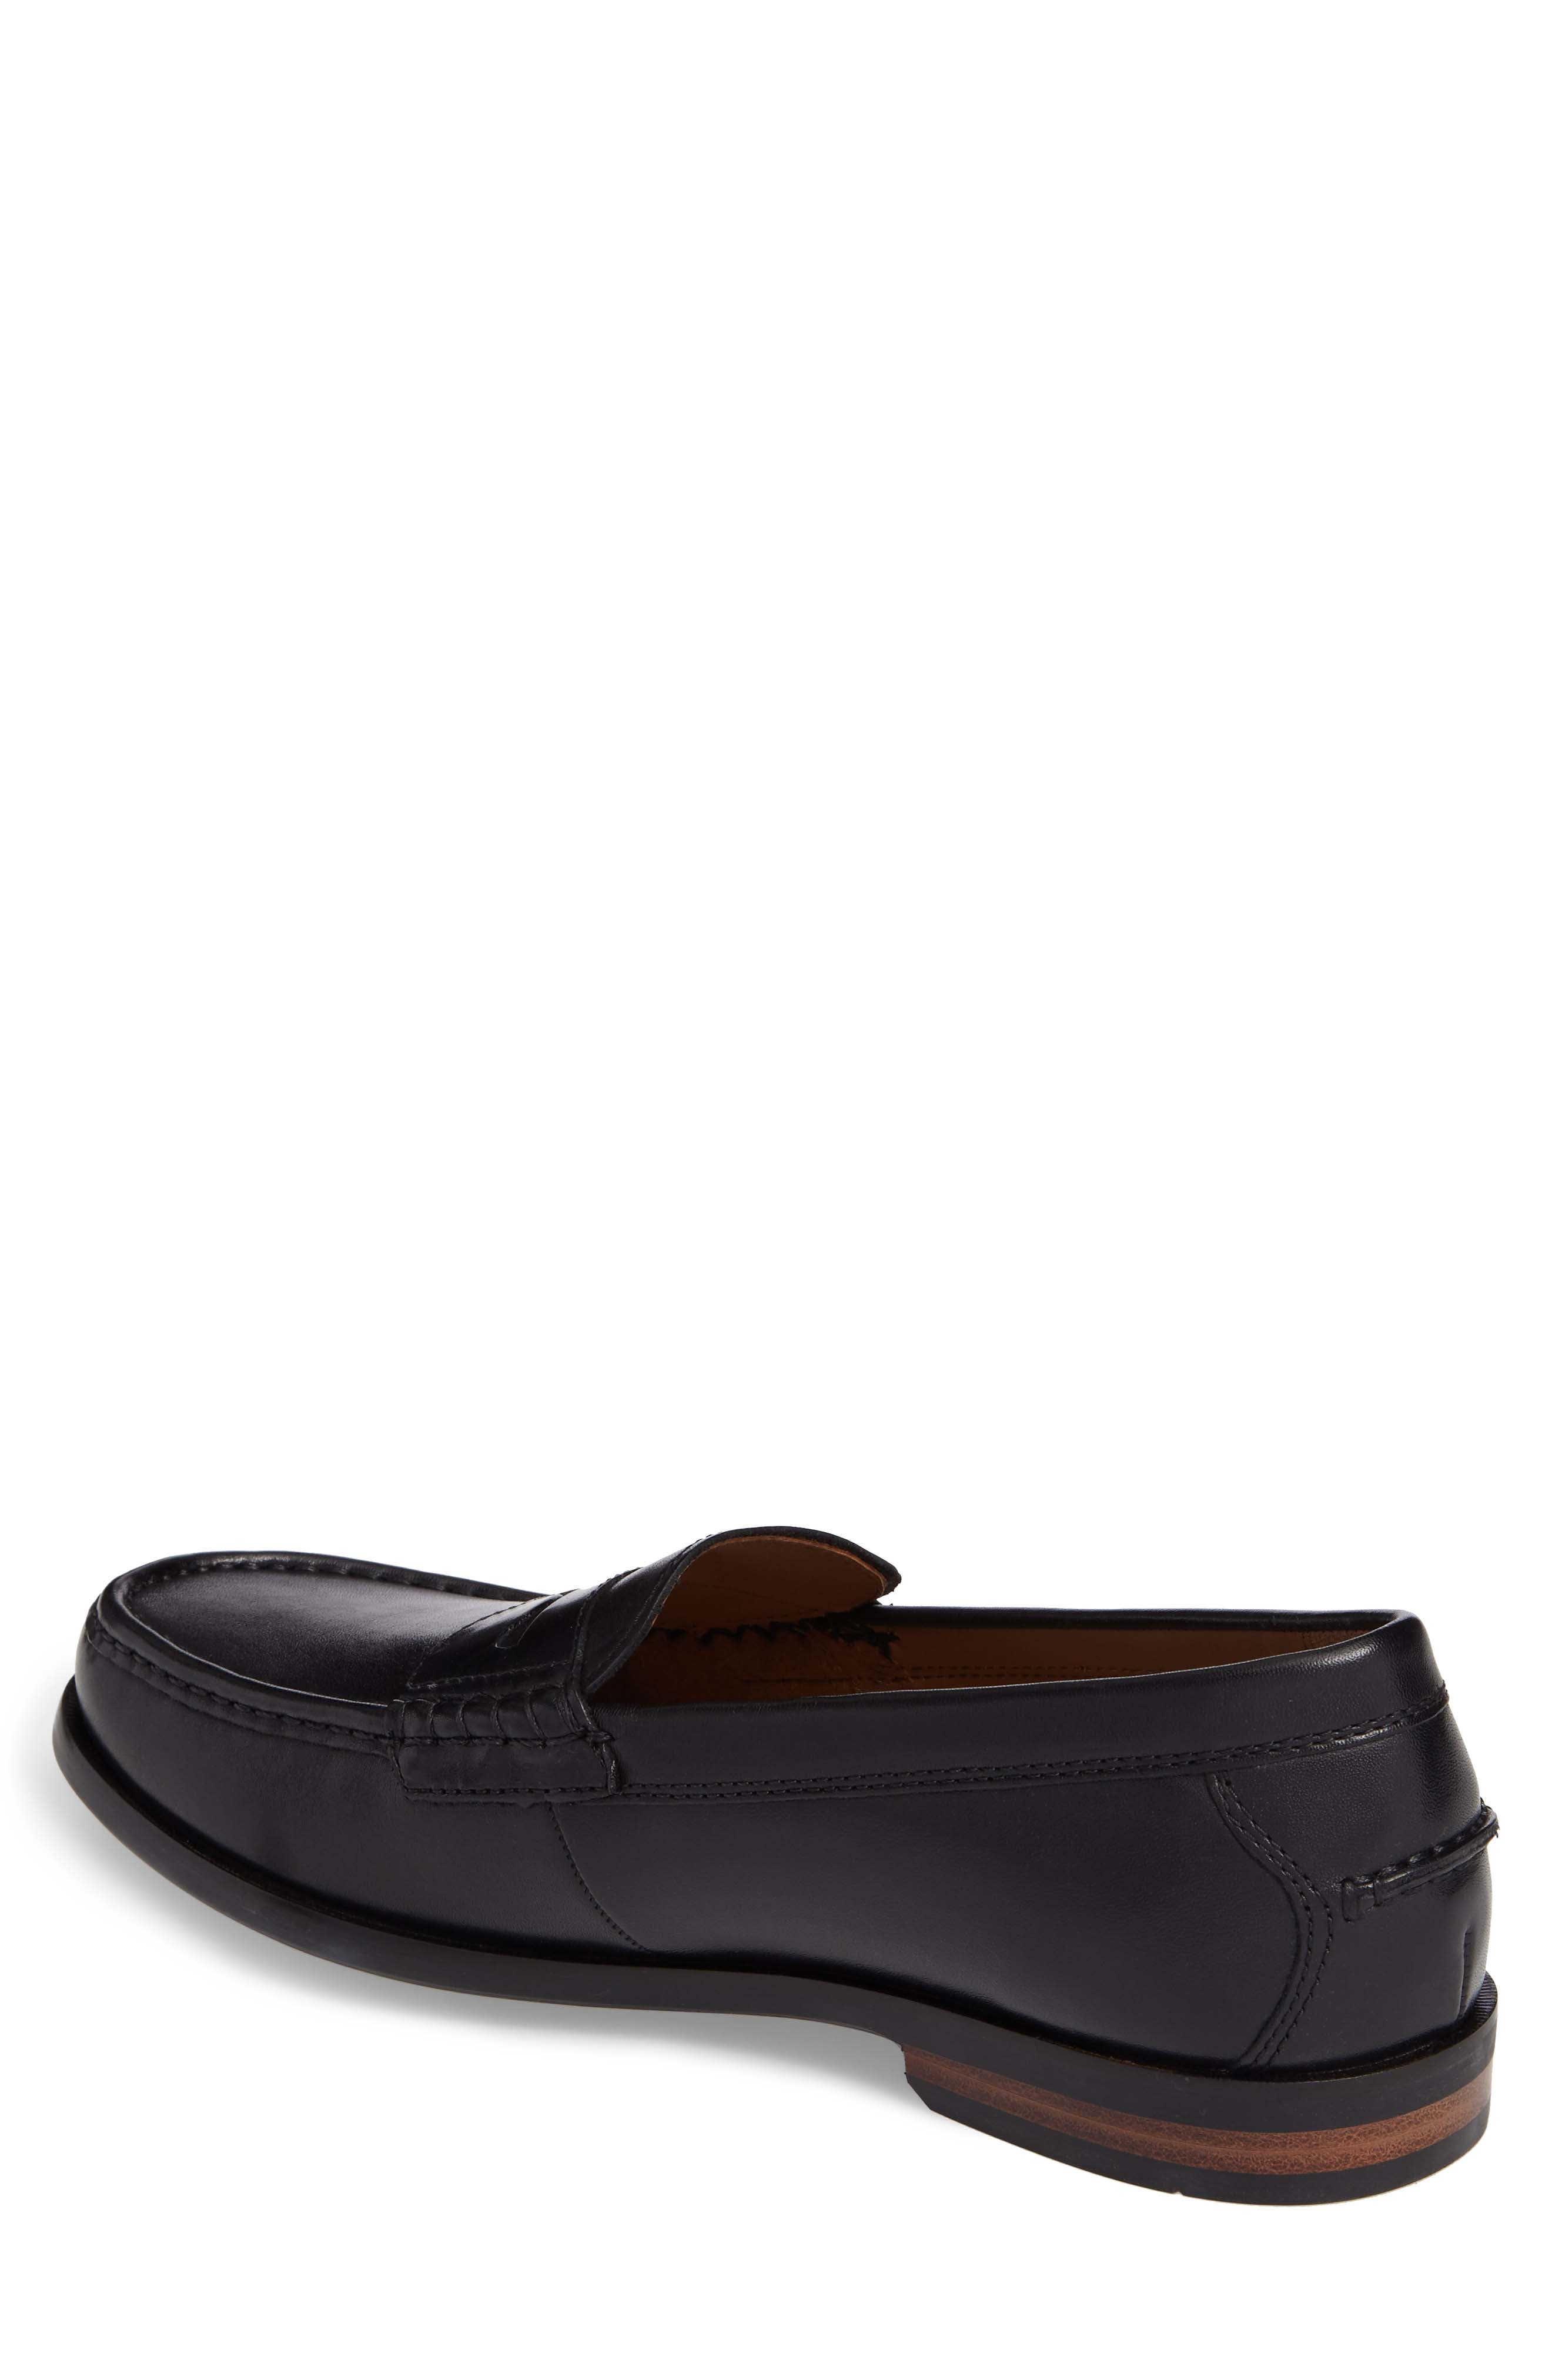 Pinch Friday Penny Loafer,                             Alternate thumbnail 2, color,                             Black Leather